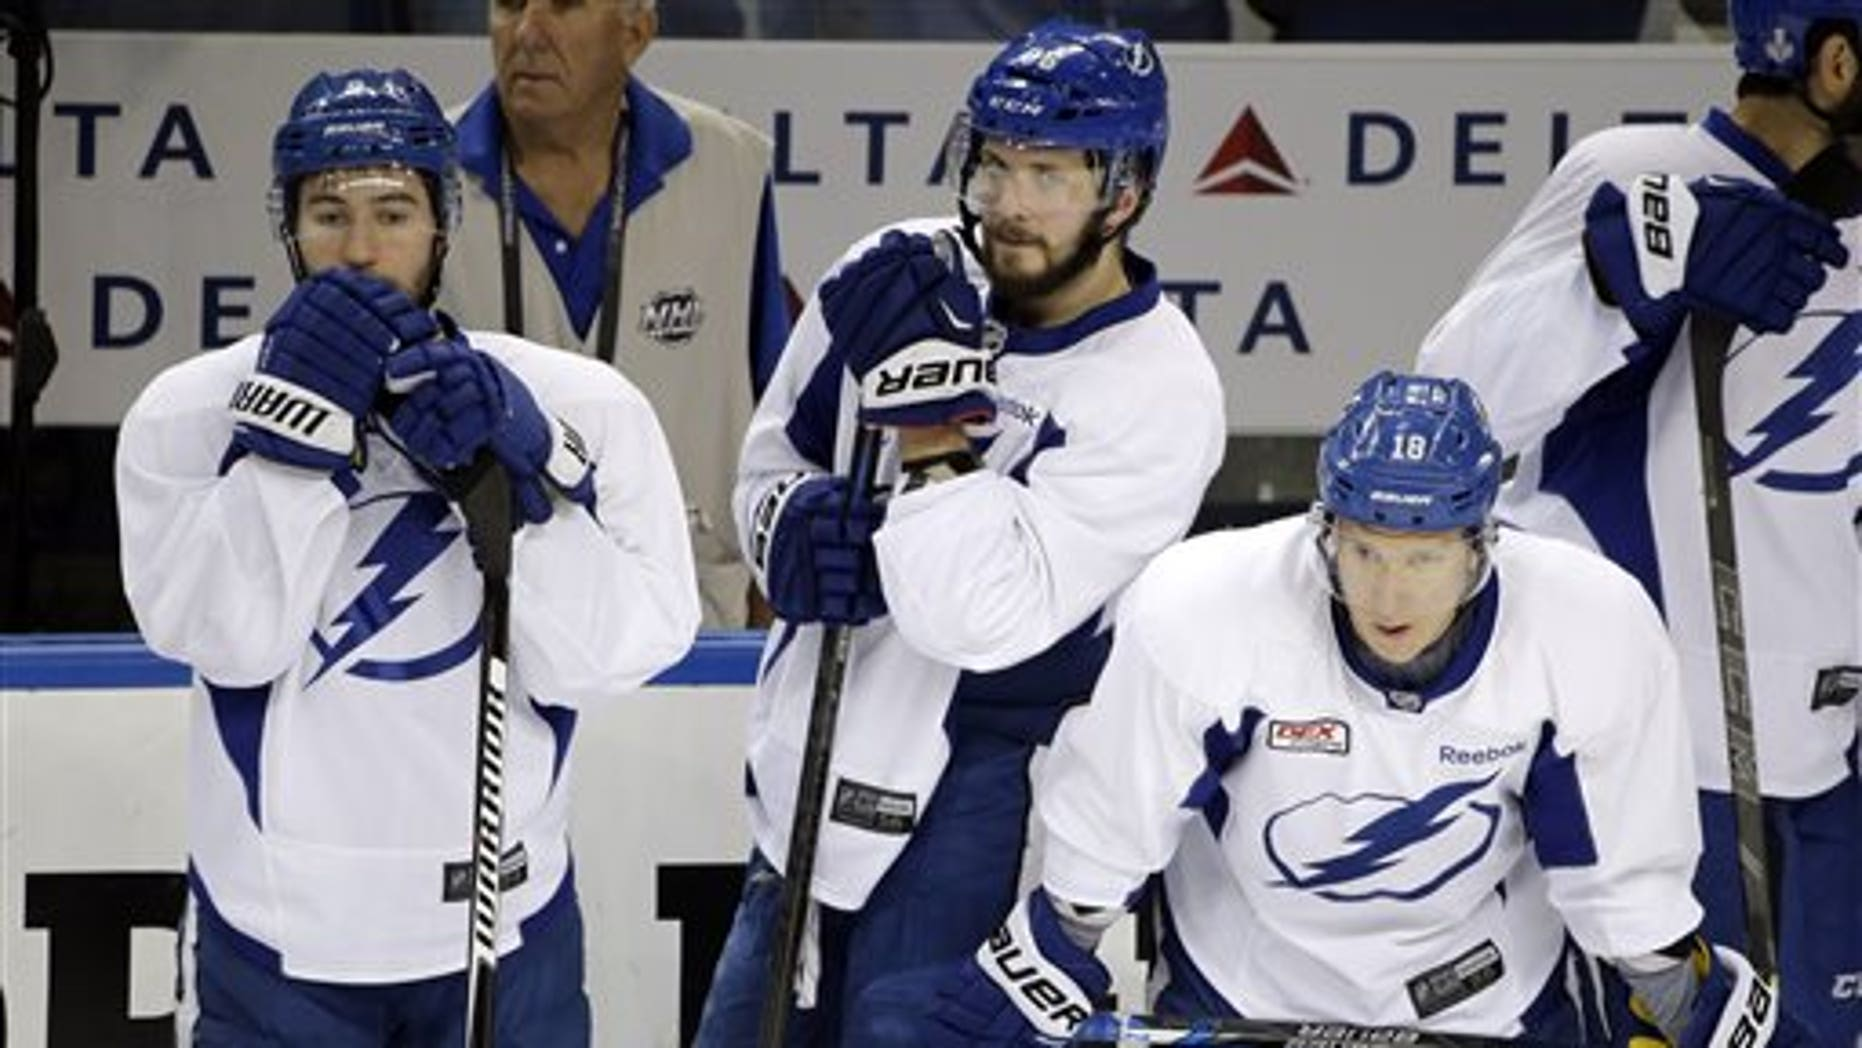 Tampa Bay Lightning players, from left, Tyler Johnson, Nikita Kucherov, and Ondrej Palat, also known as the triplets, watch drills during NHL hockey practice at Amalie Arena for the Stanley Cup Finals, Tuesday, June 2, 2015, in Tampa, Fla. (AP Photo/Chris O'Meara)